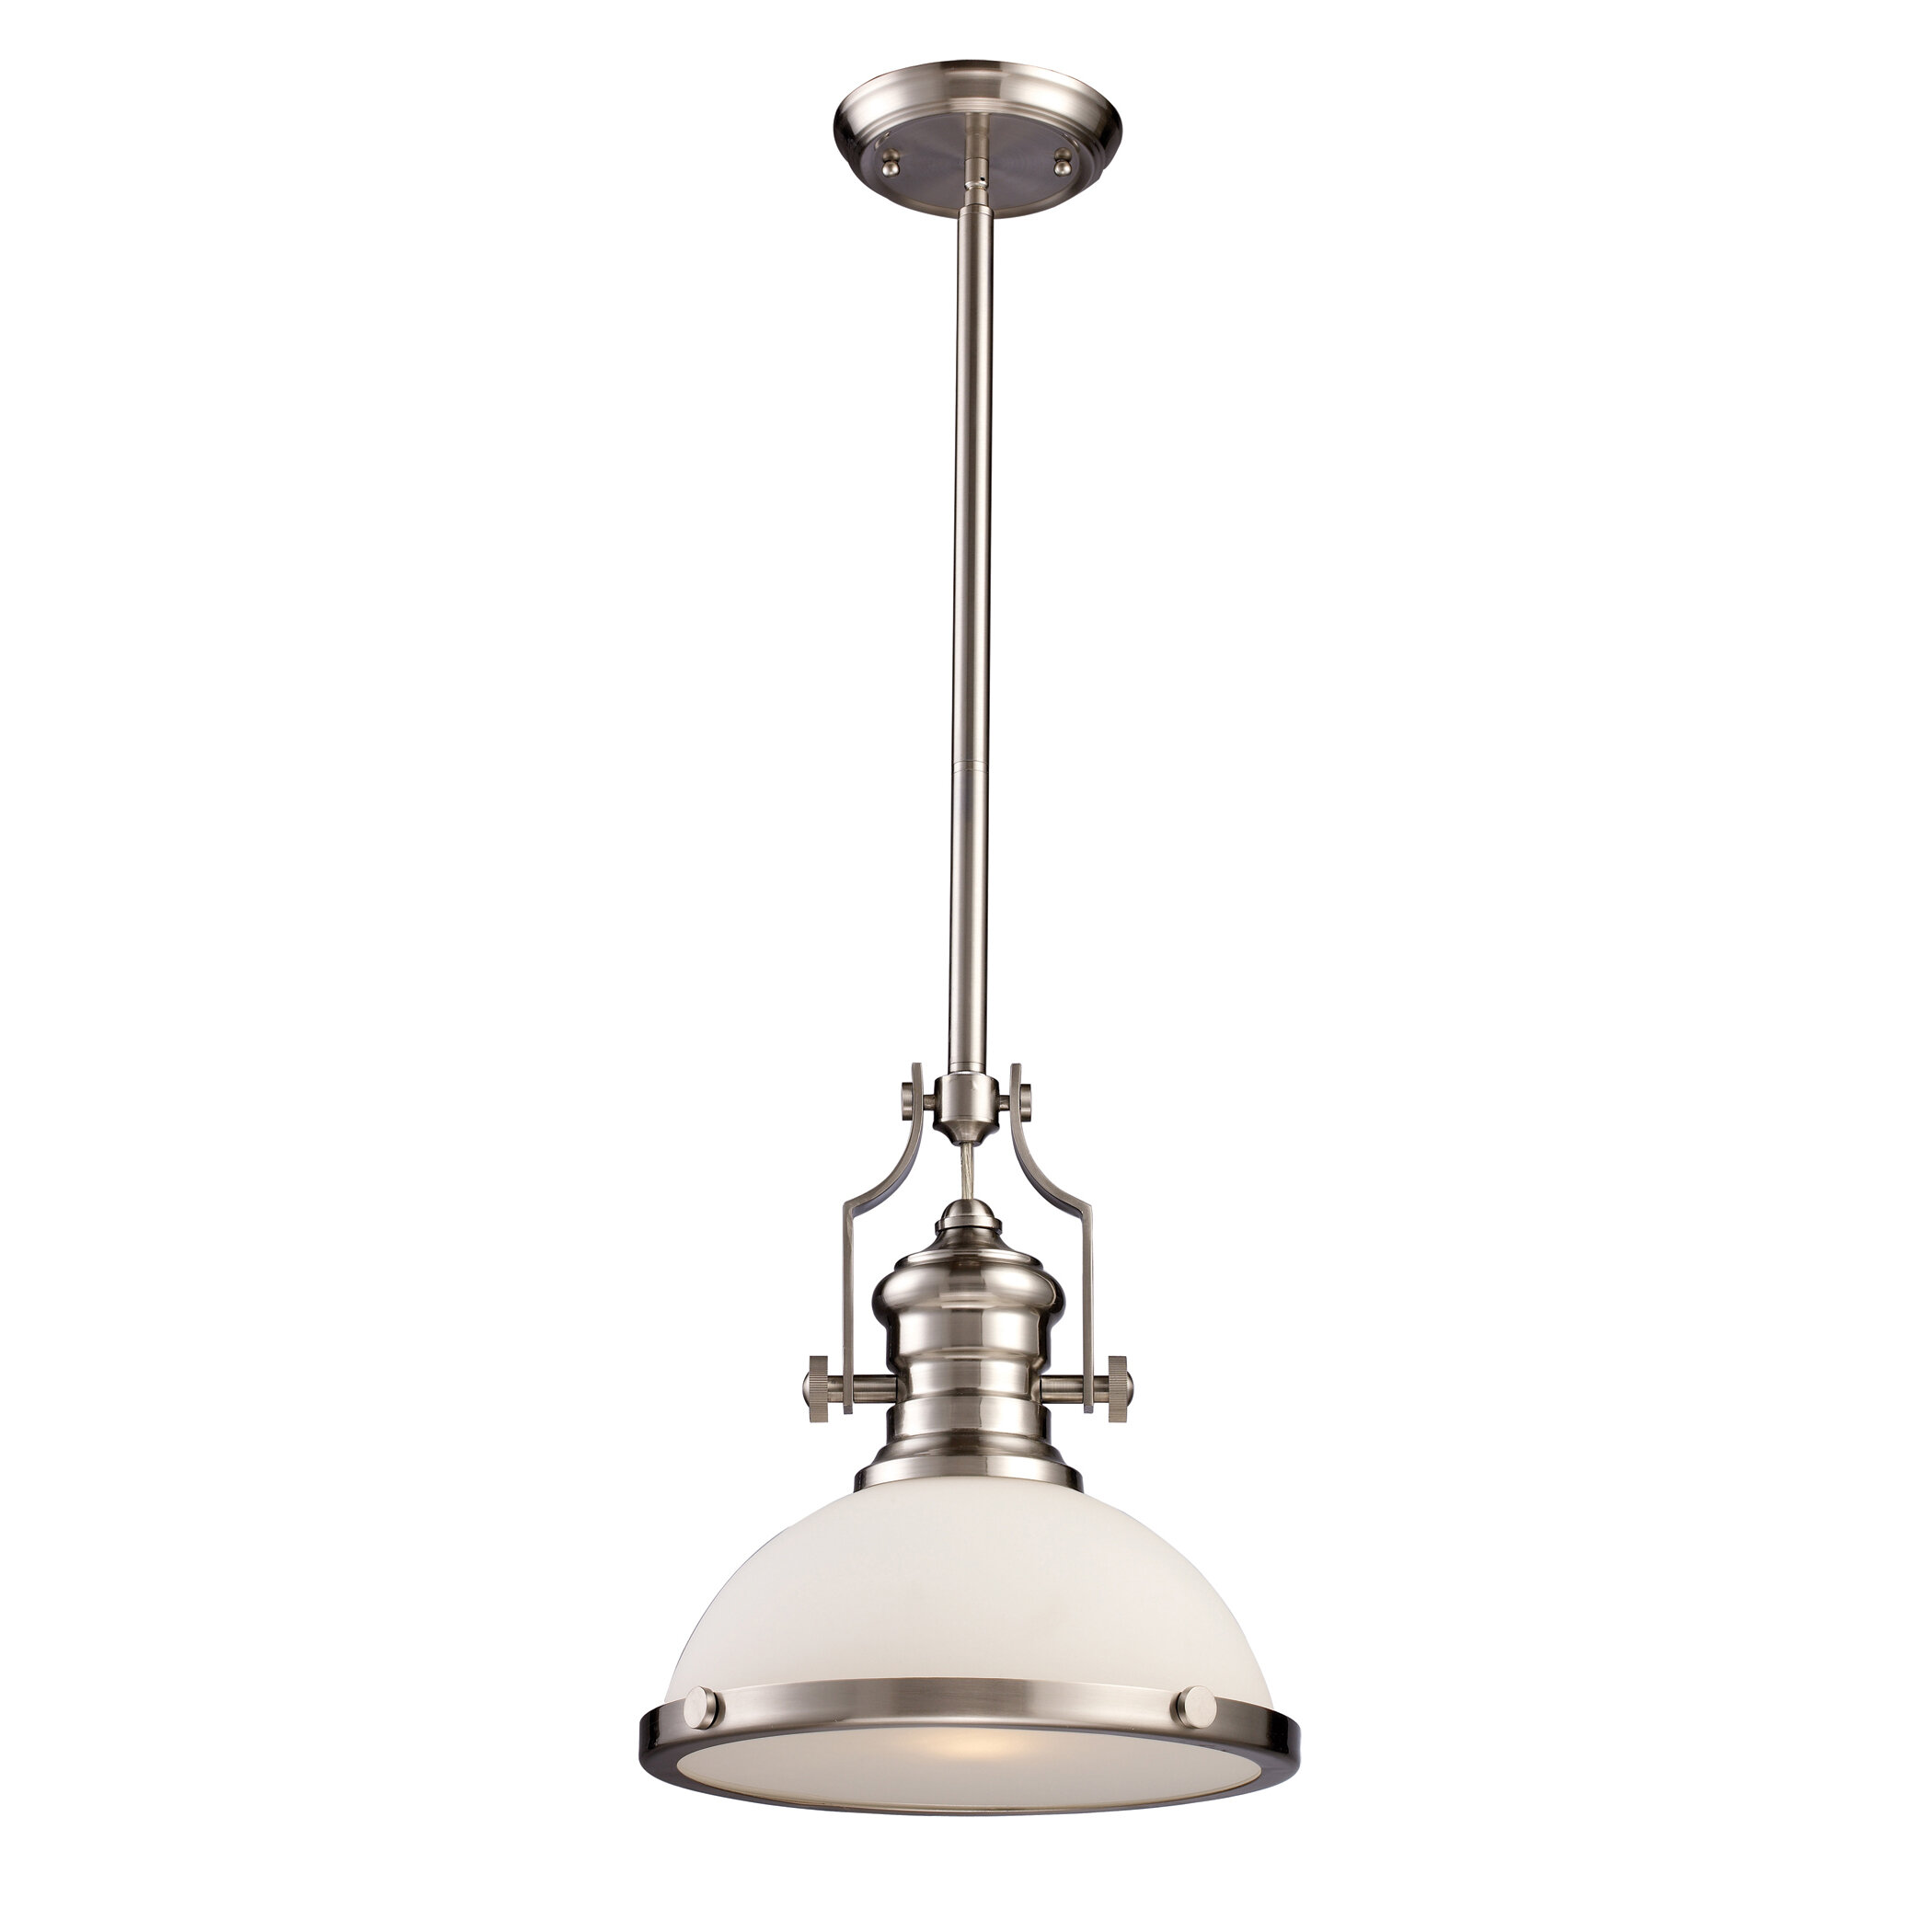 lightingshowplace com pendant large elan light multi chrome single eisa